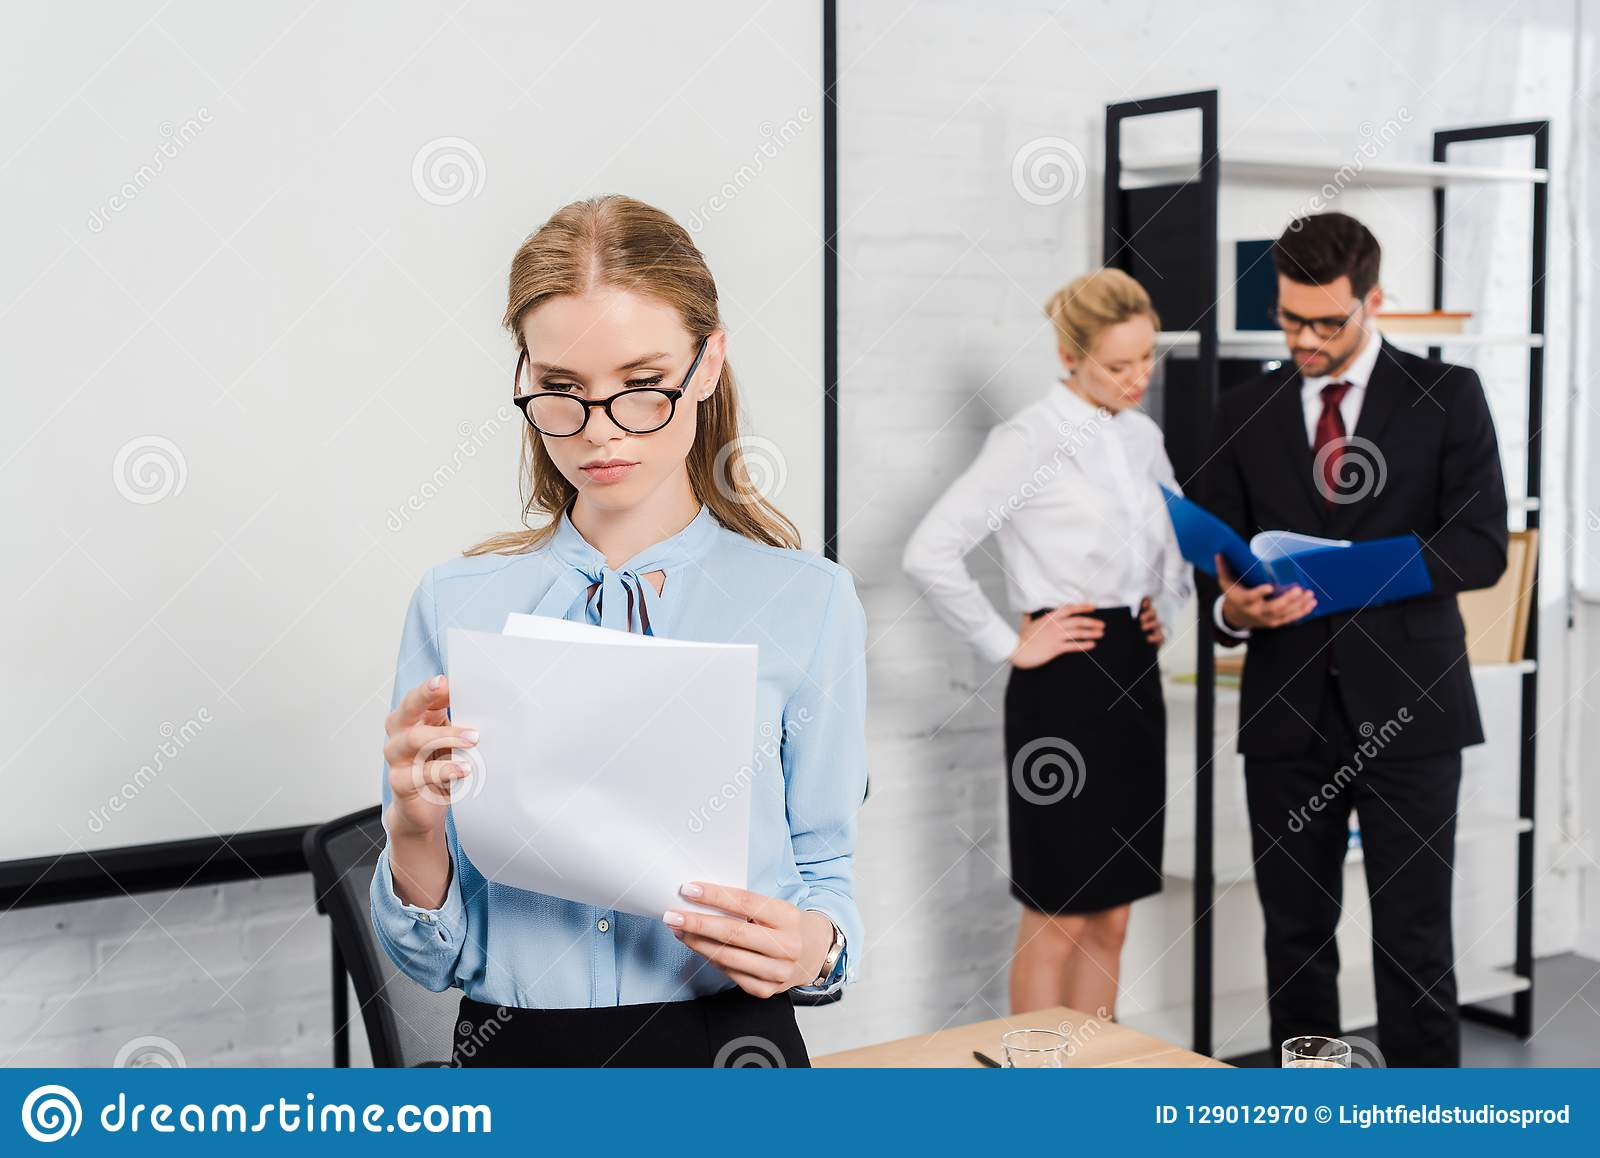 attractive young businesswoman with documents standing at modern office with colleagues